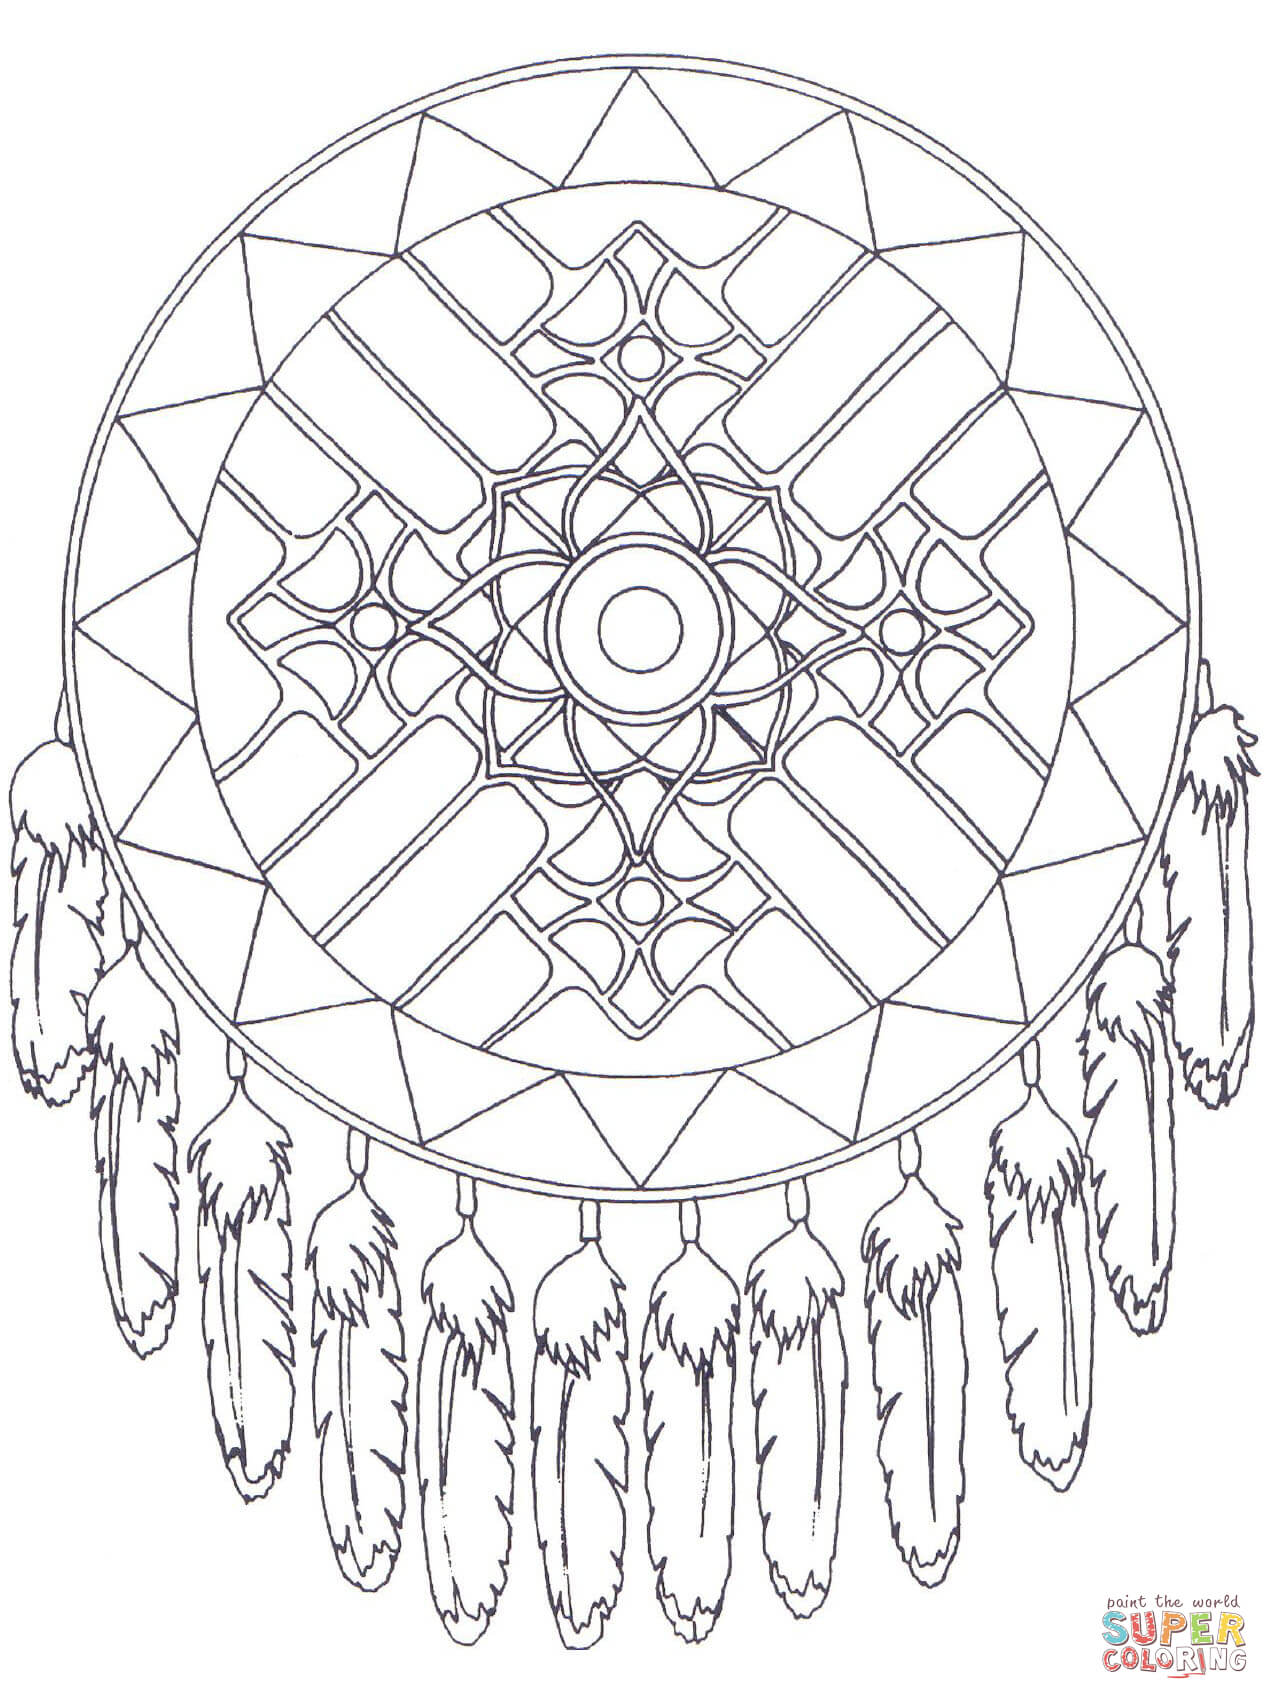 9 Images of Native Art Free Printable